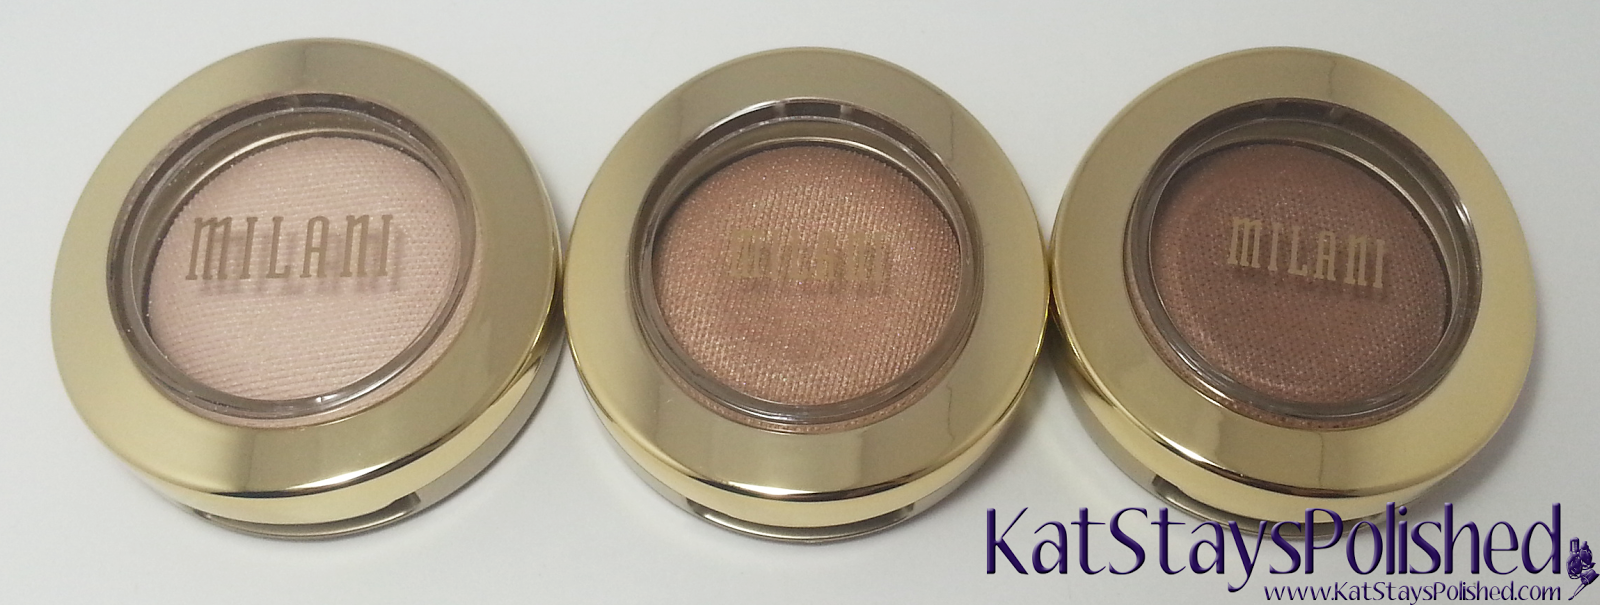 Milani Bella Eyes Gel Powder Eye Shadow - Ivory - Sand - Cappuccino | Kat Stays Polished